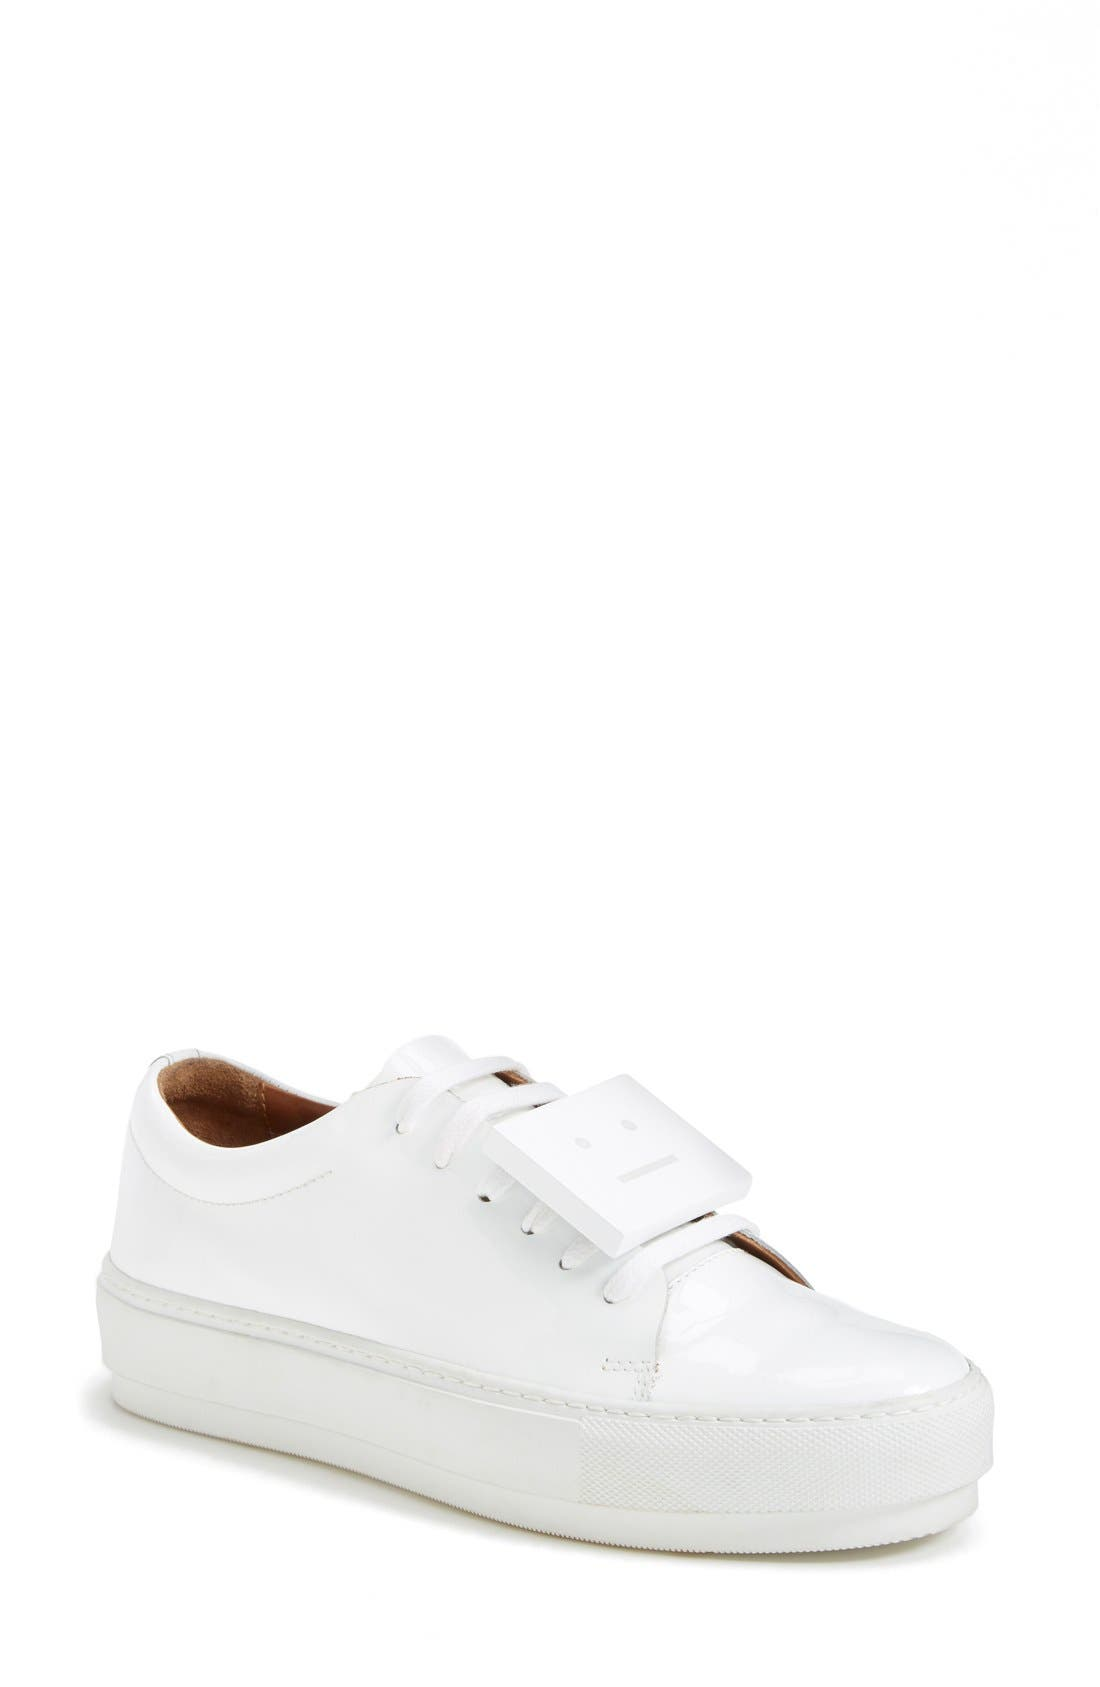 ACNE STUDIOS 'Adriana' Leather Sneaker